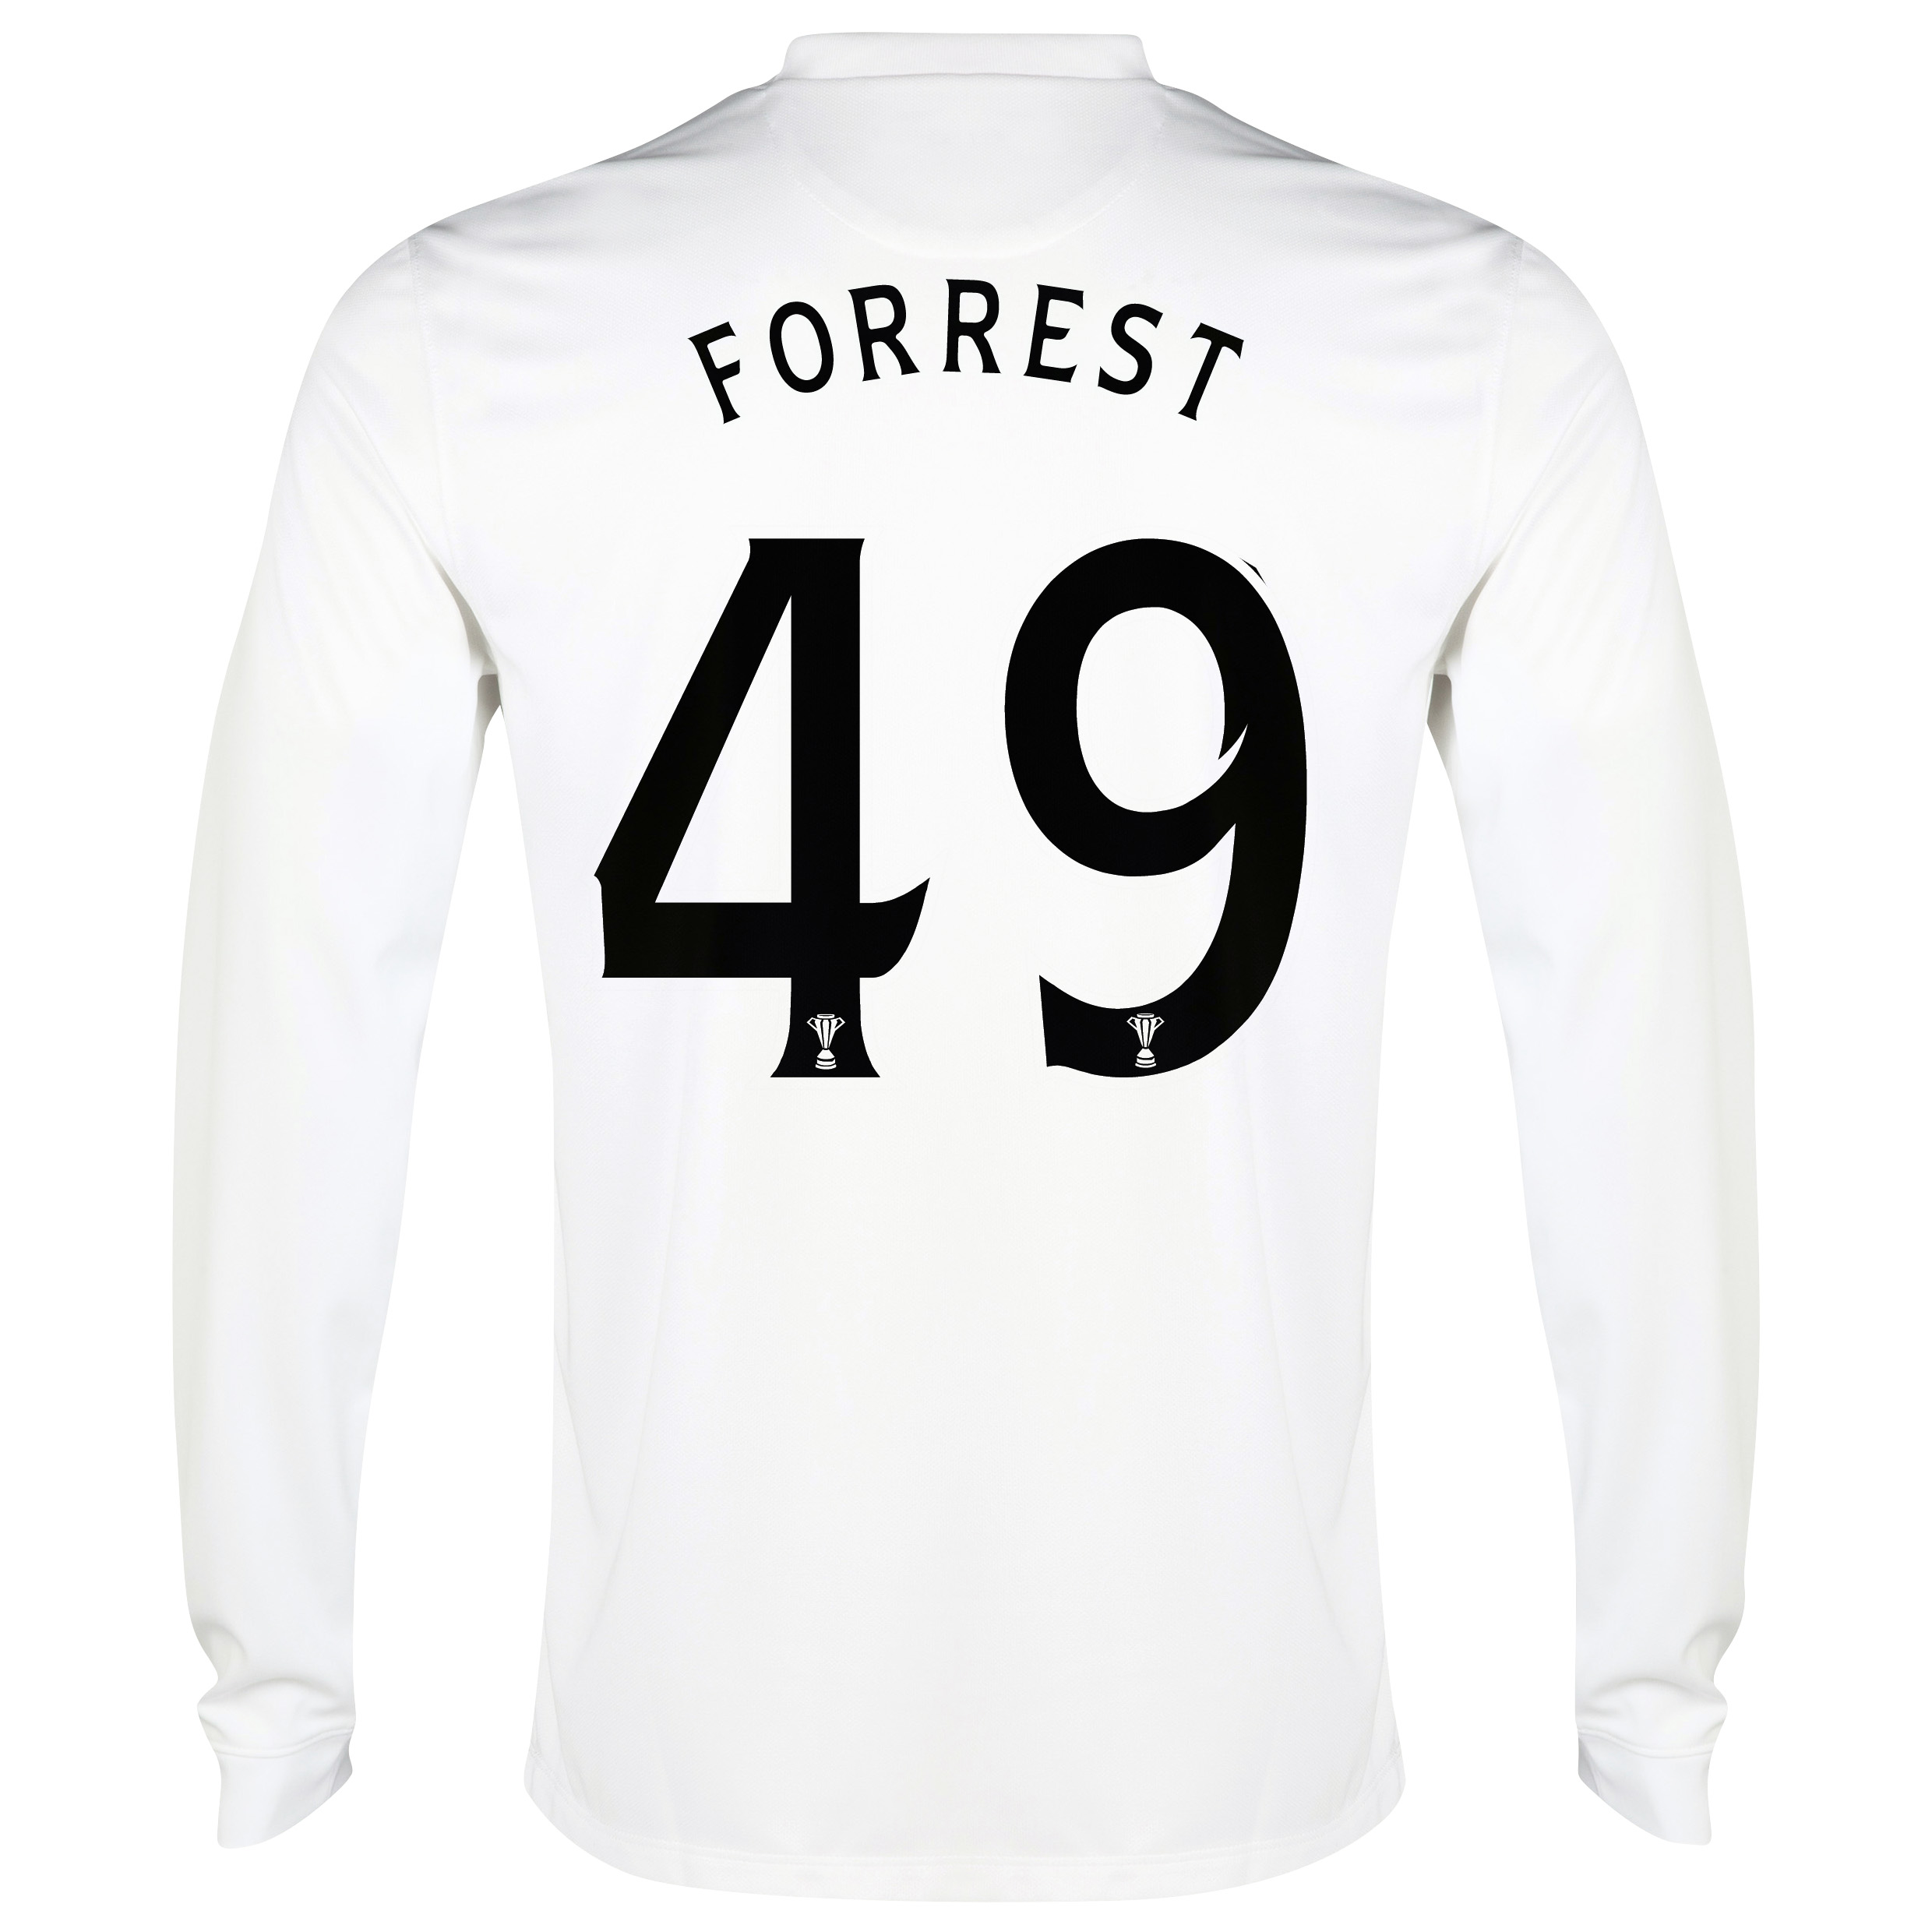 Celtic 3rd Shirt 2014/15 - Long Sleeved - Unsponsored White with Forrest 49 printing